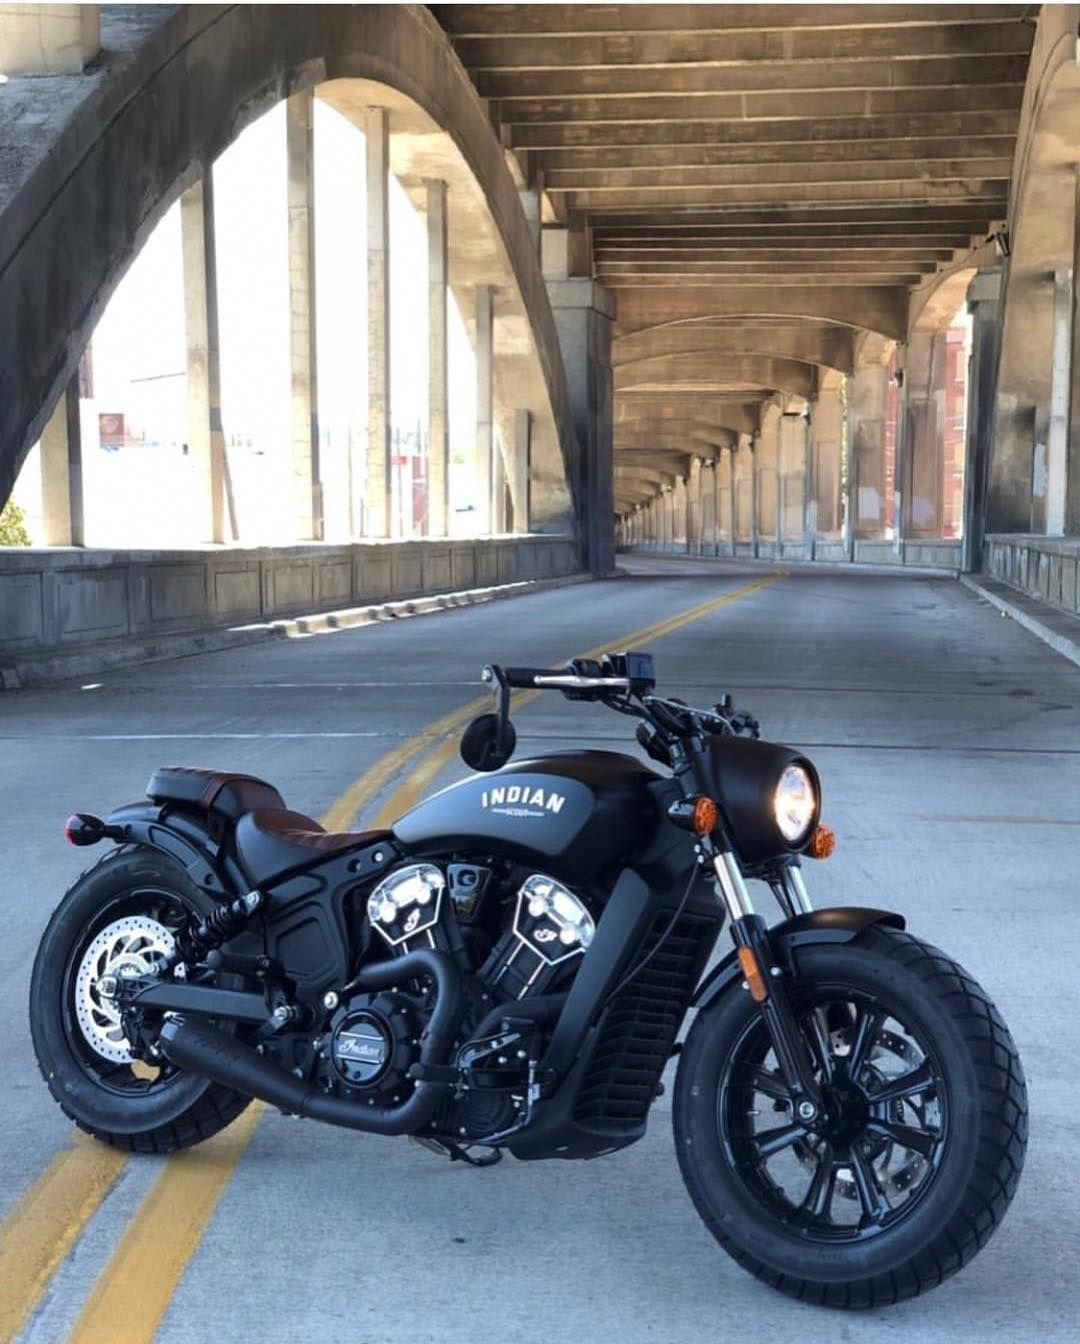 Indian Motorcycles Chopper Indianmotorcycles In 2020 Indian Motorcycle Vintage Indian Motorcycles Bobber Motorcycle